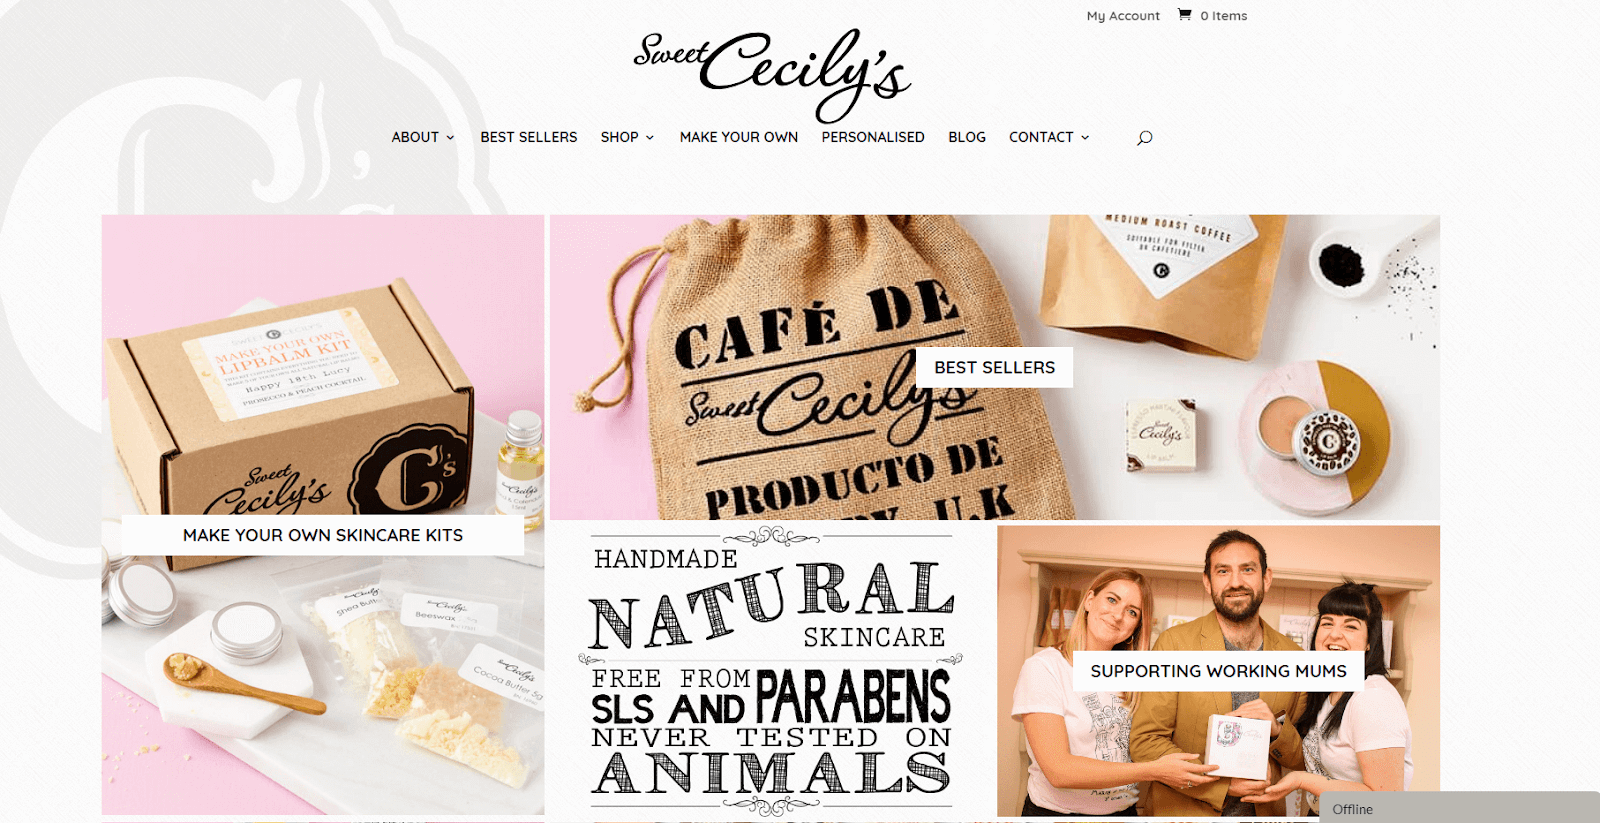 The Sweet Cecily's website.